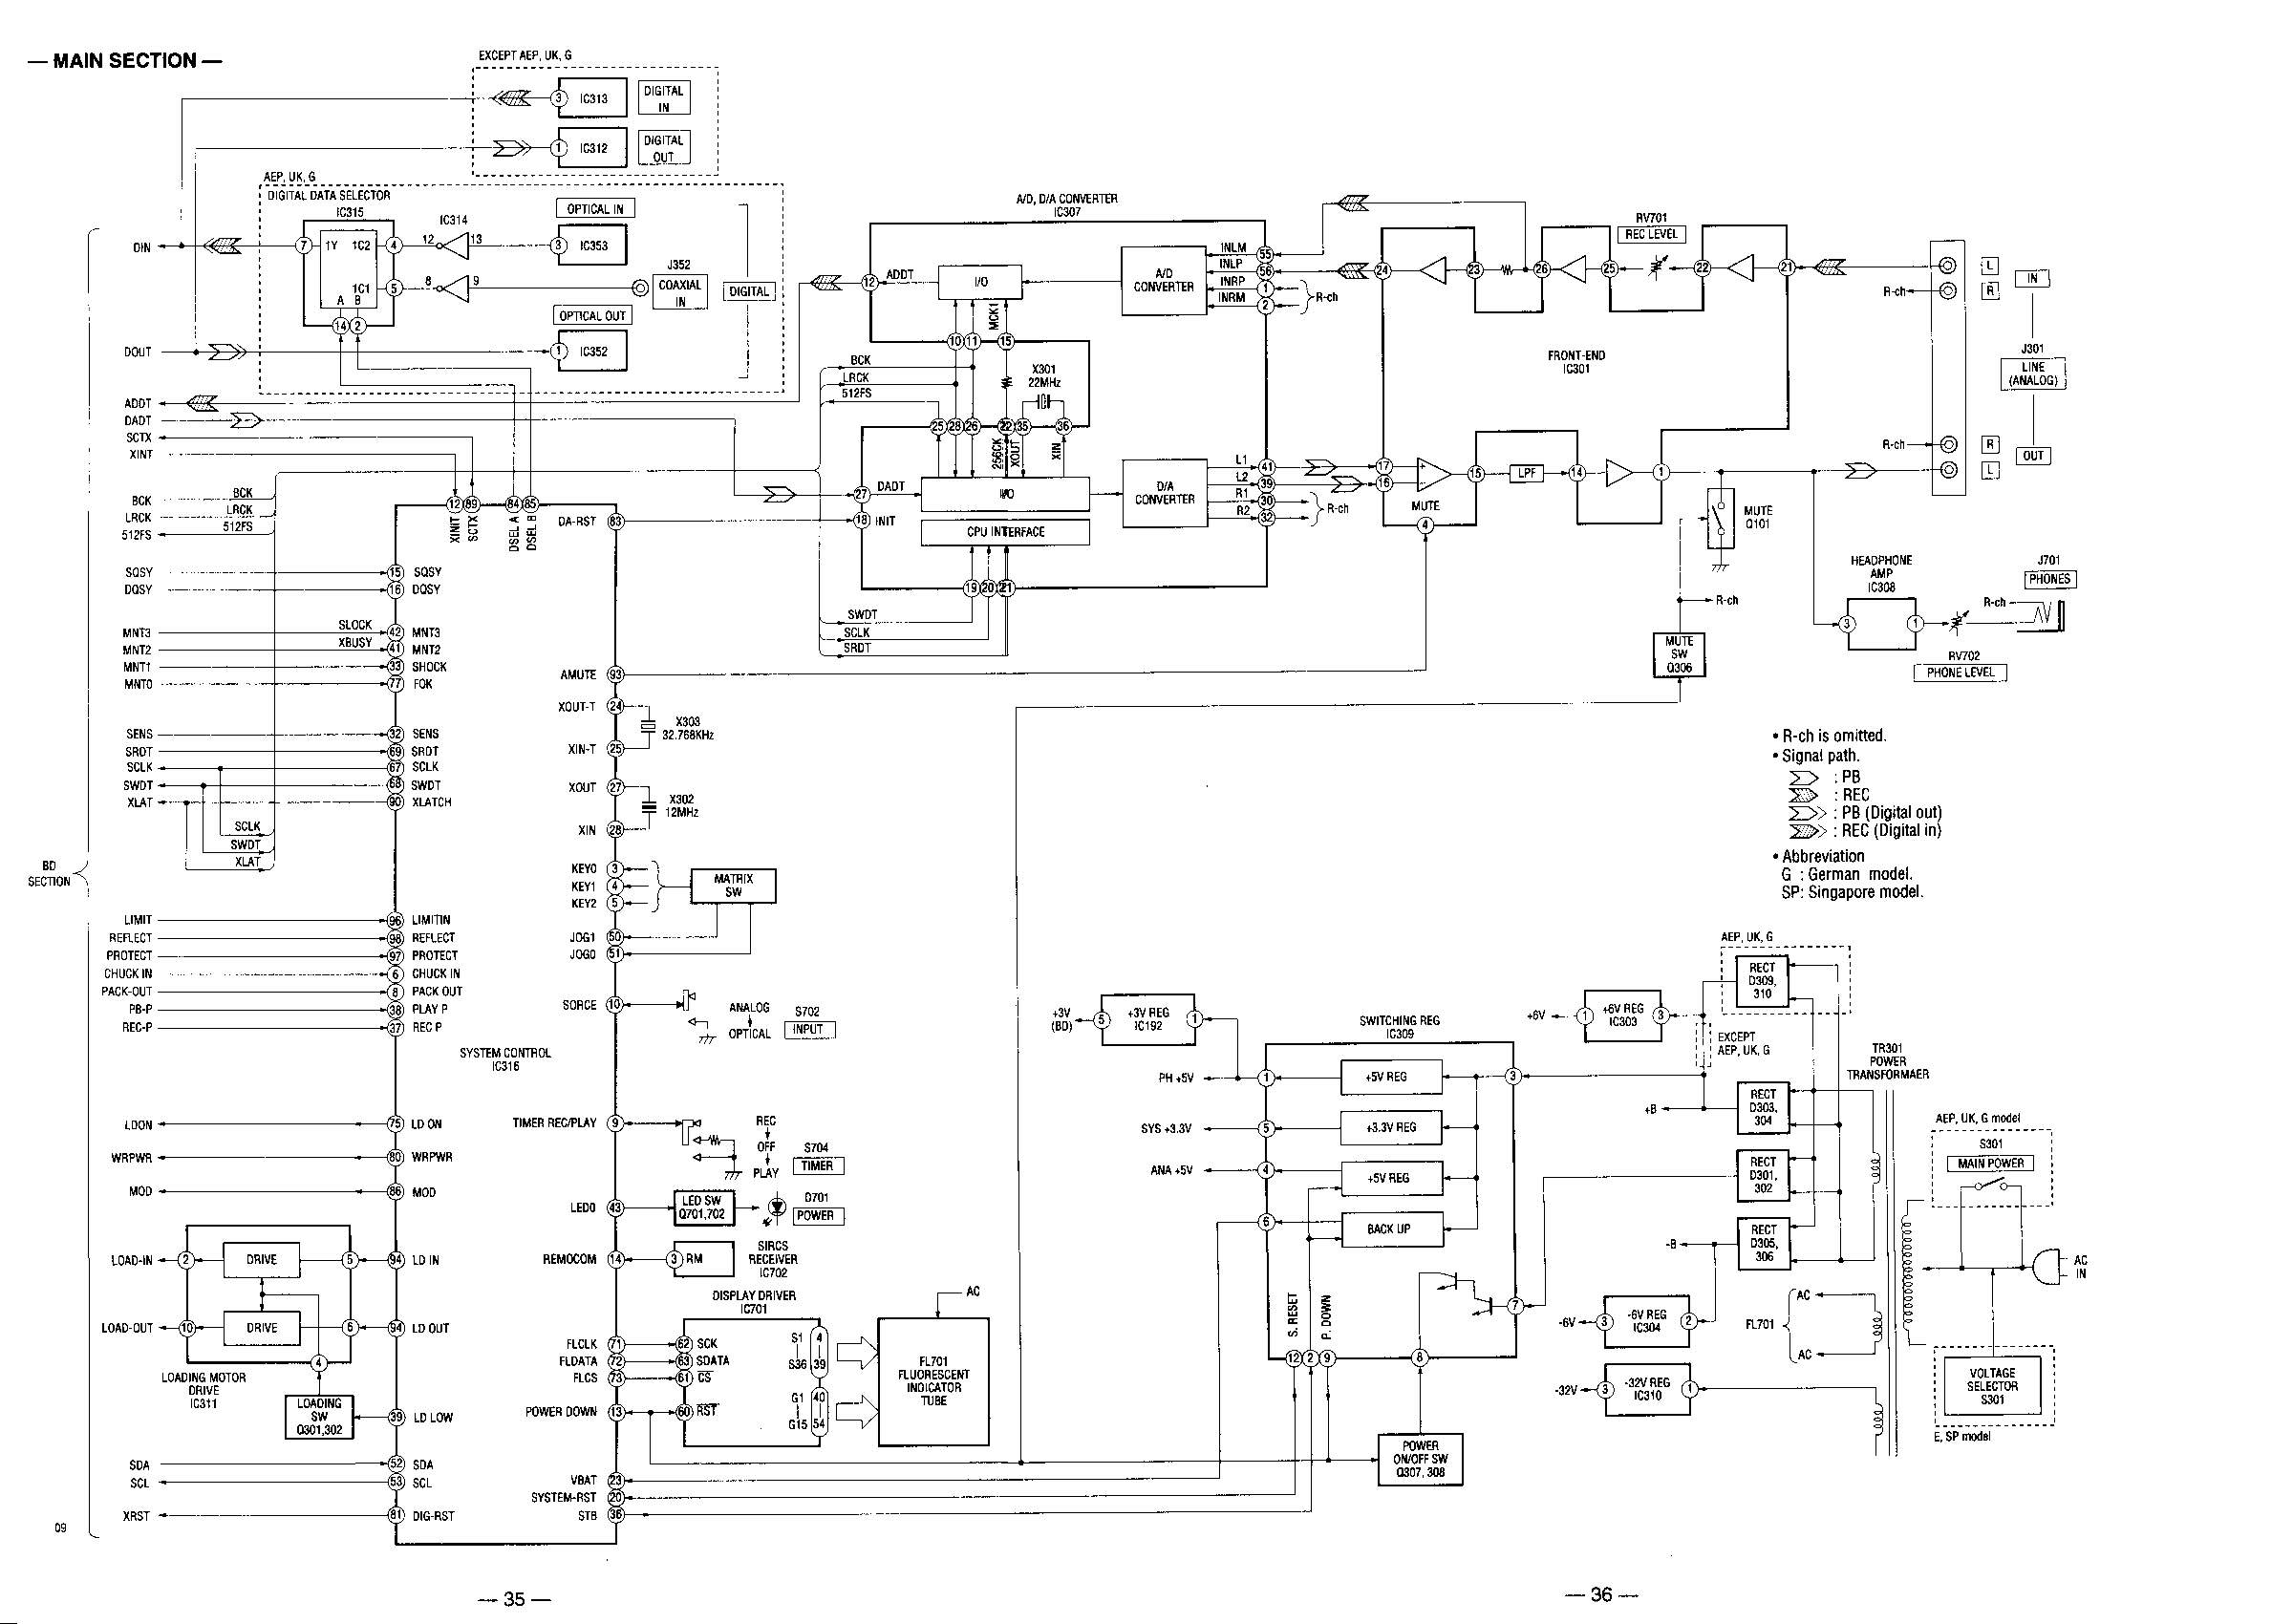 Wiring Diagram For Sigma M30 Alarm : Md community page manuals